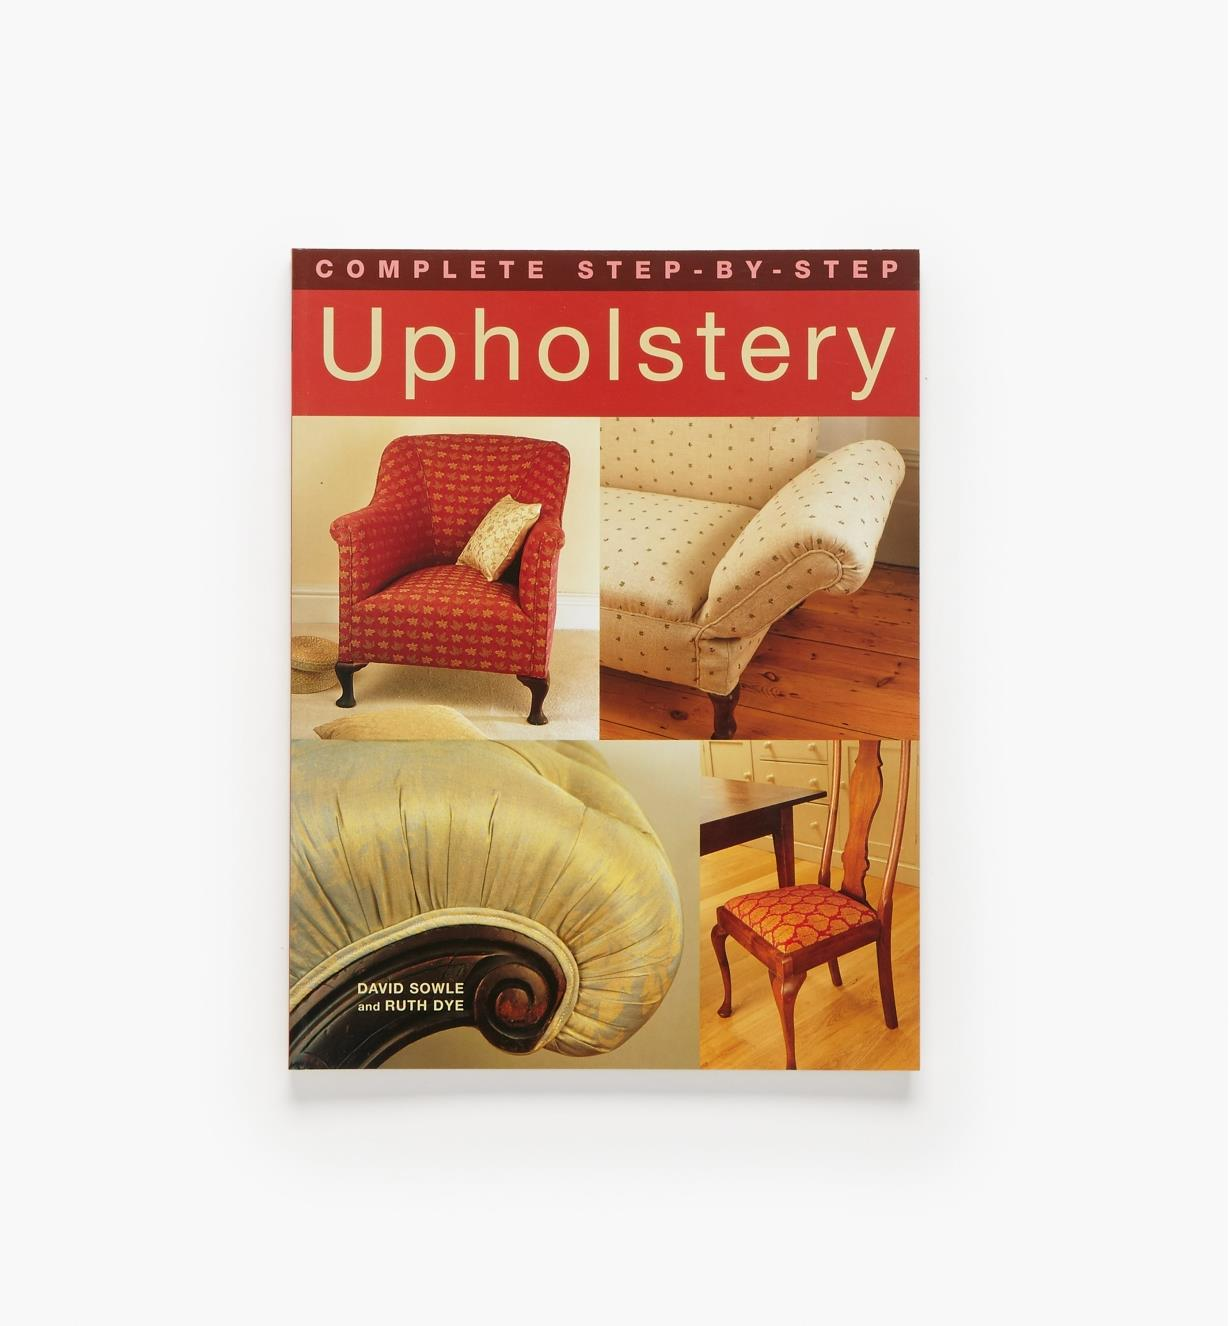 49L5100 - Complete Step-by-Step Upholstery